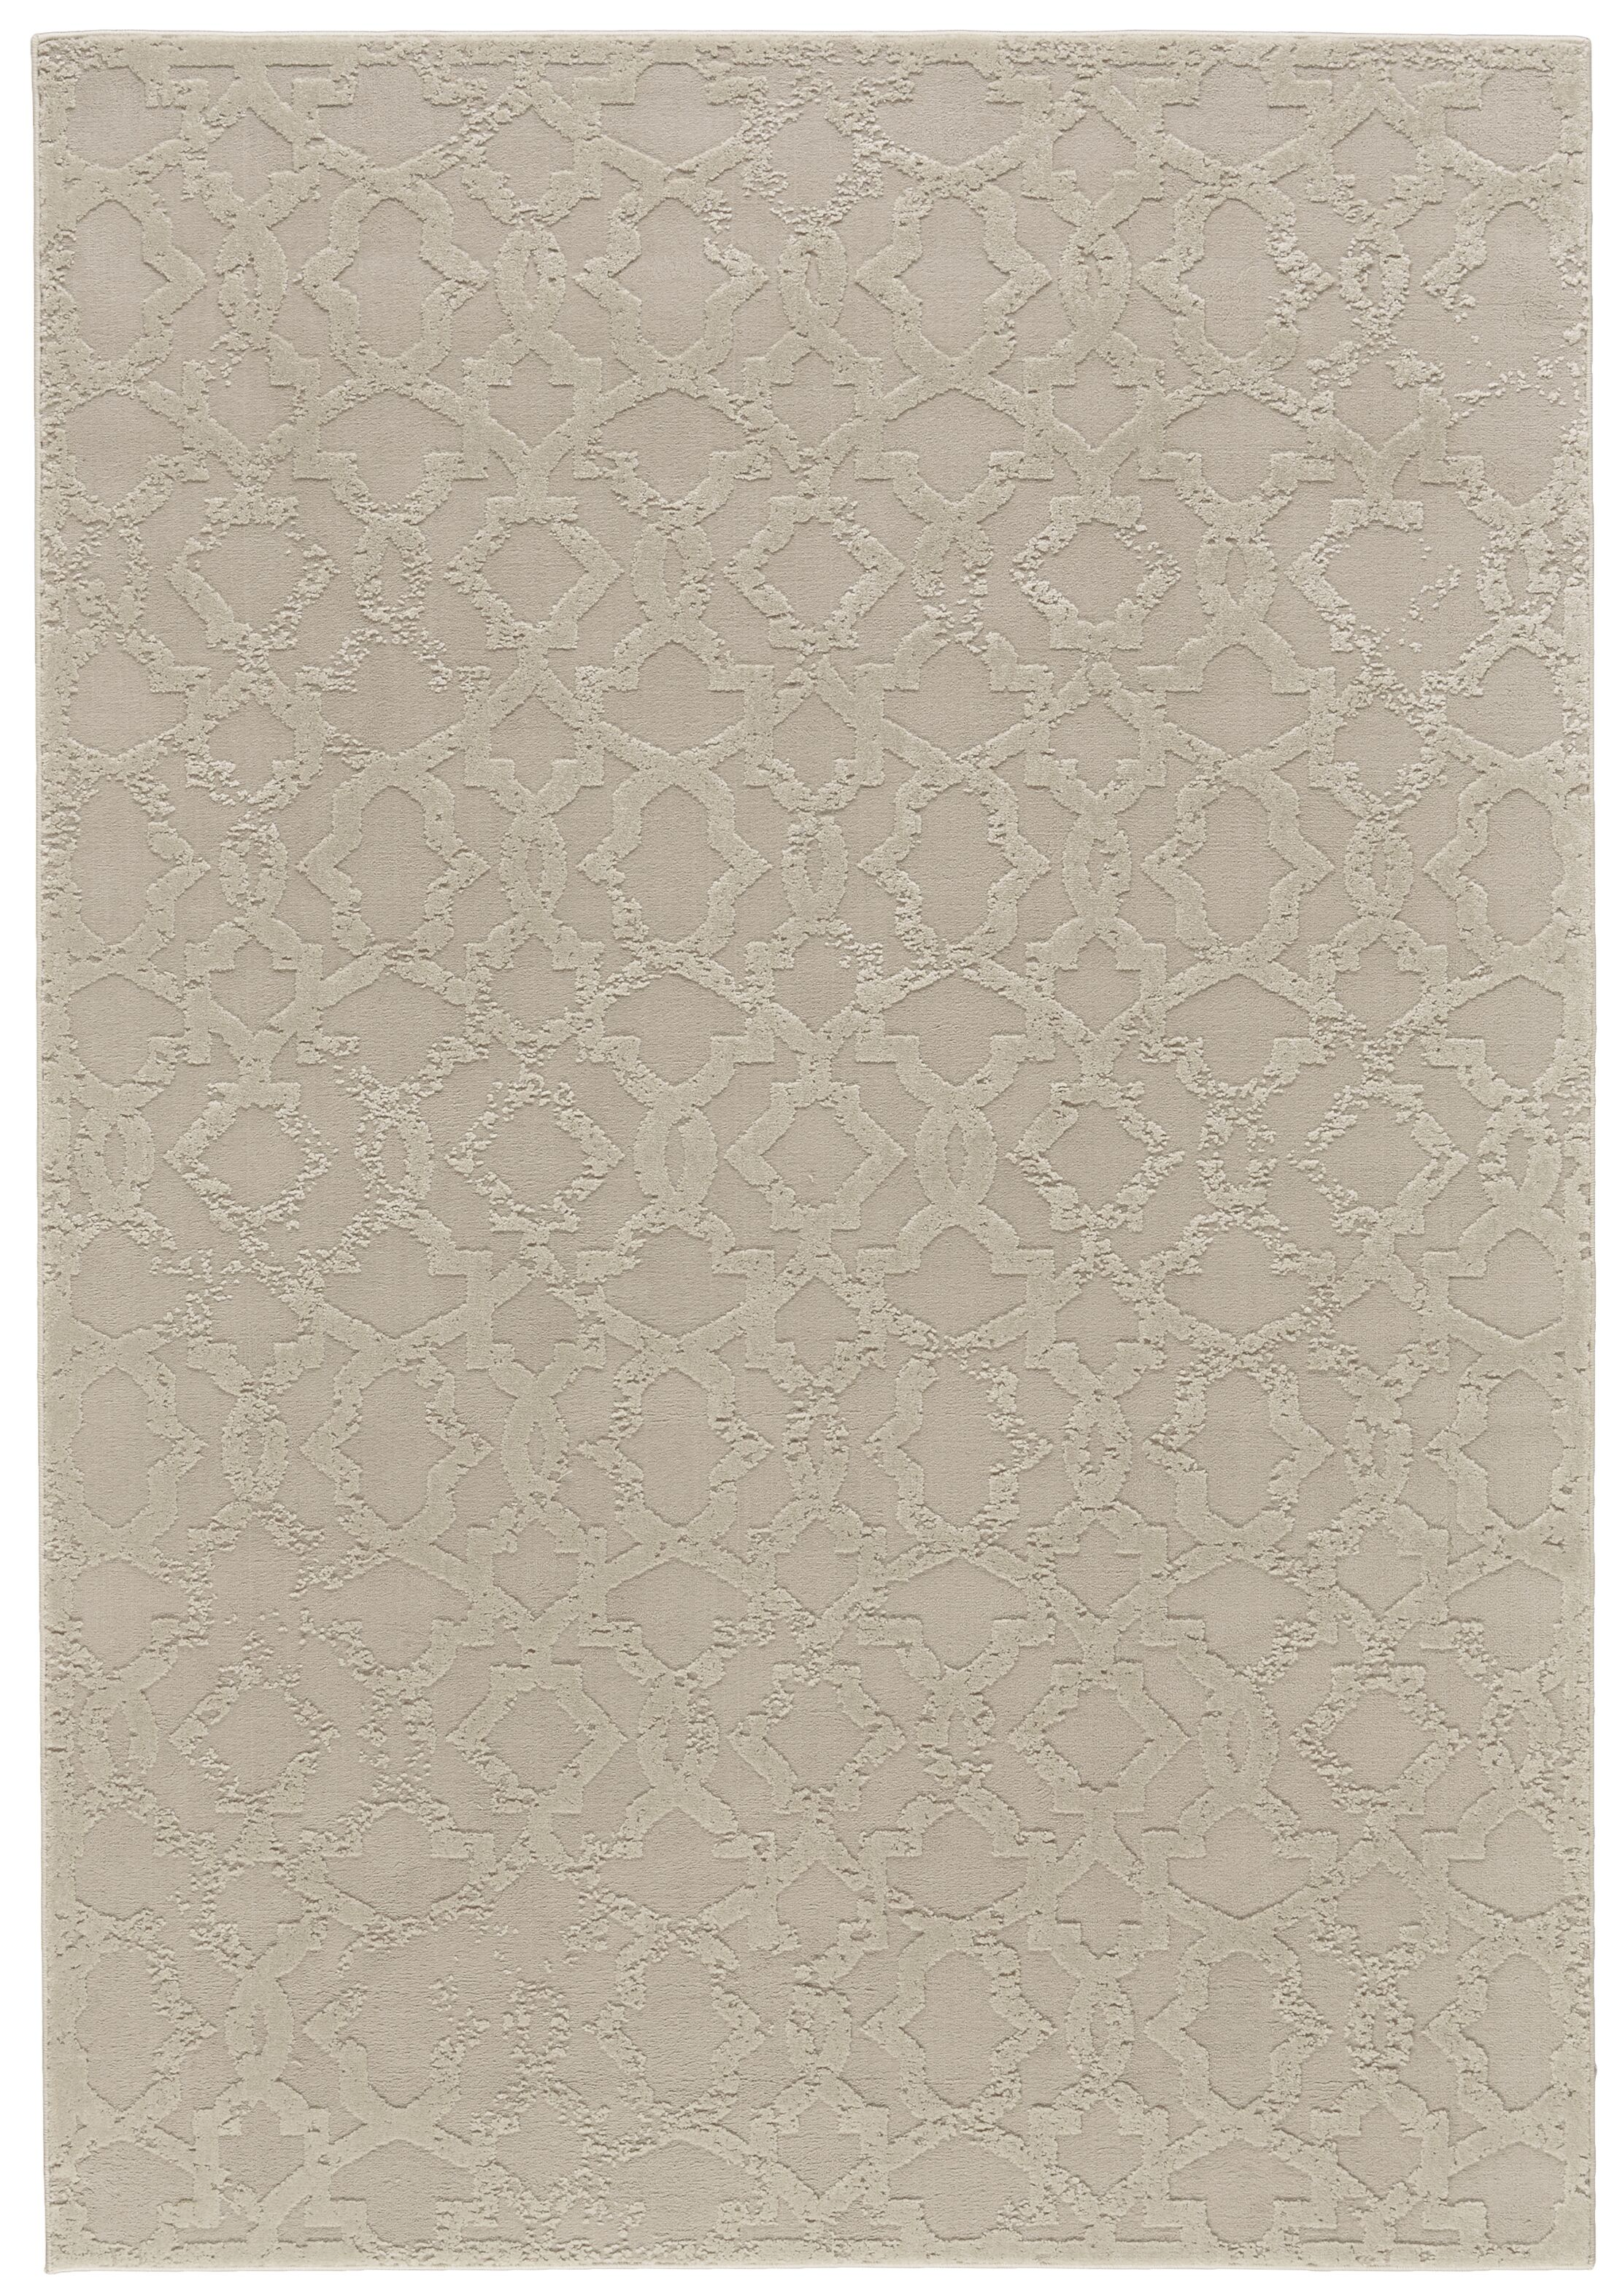 Chevalier Ivory Area Rug Rug Size: Rectangle 5' x 8'